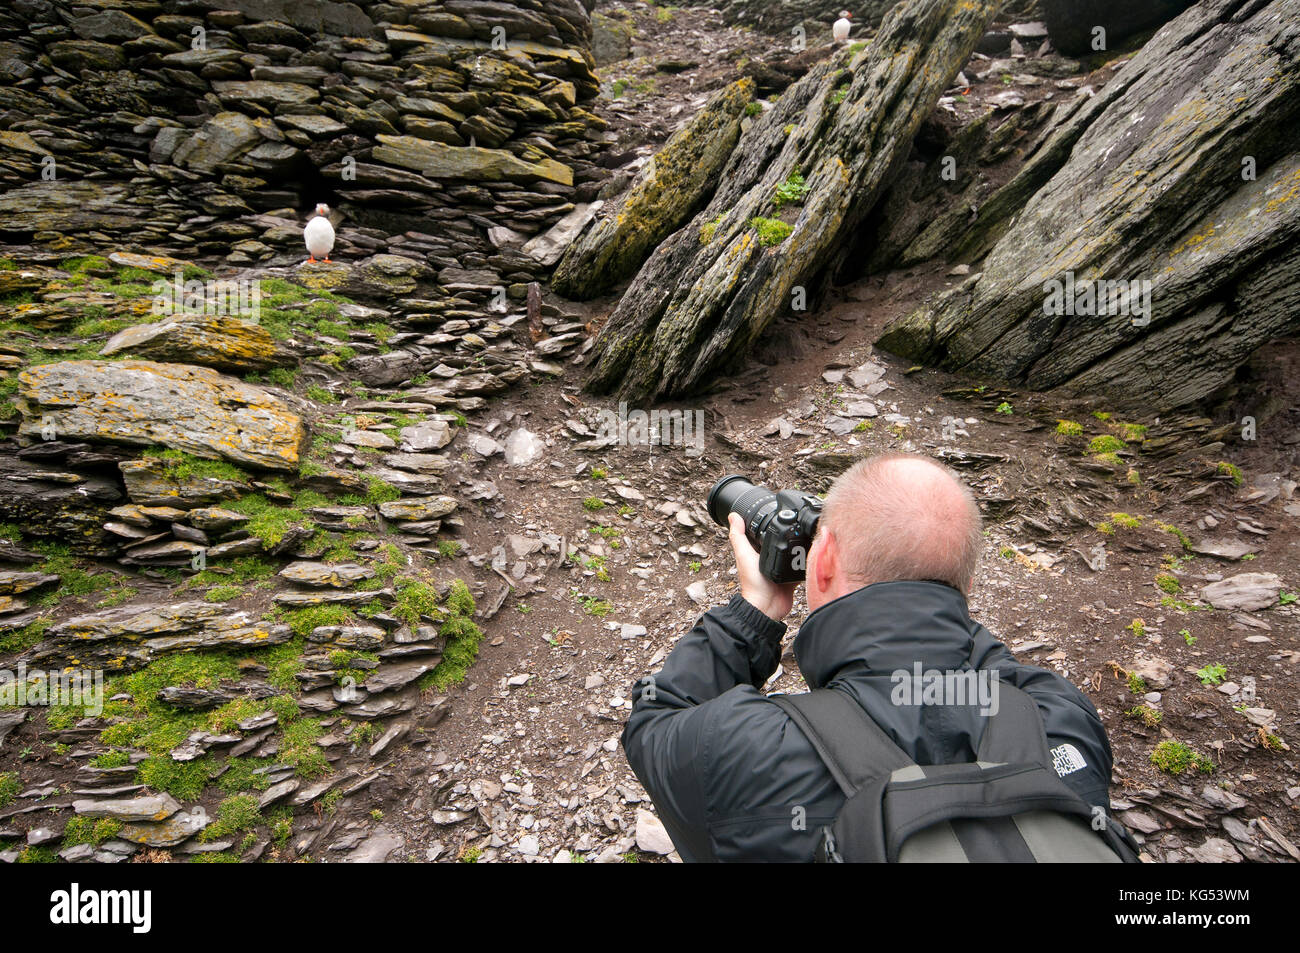 Tourist photographing puffin (Fratercula arctica) at Skellig Michael Island, County Kerry, Ireland - Stock Image